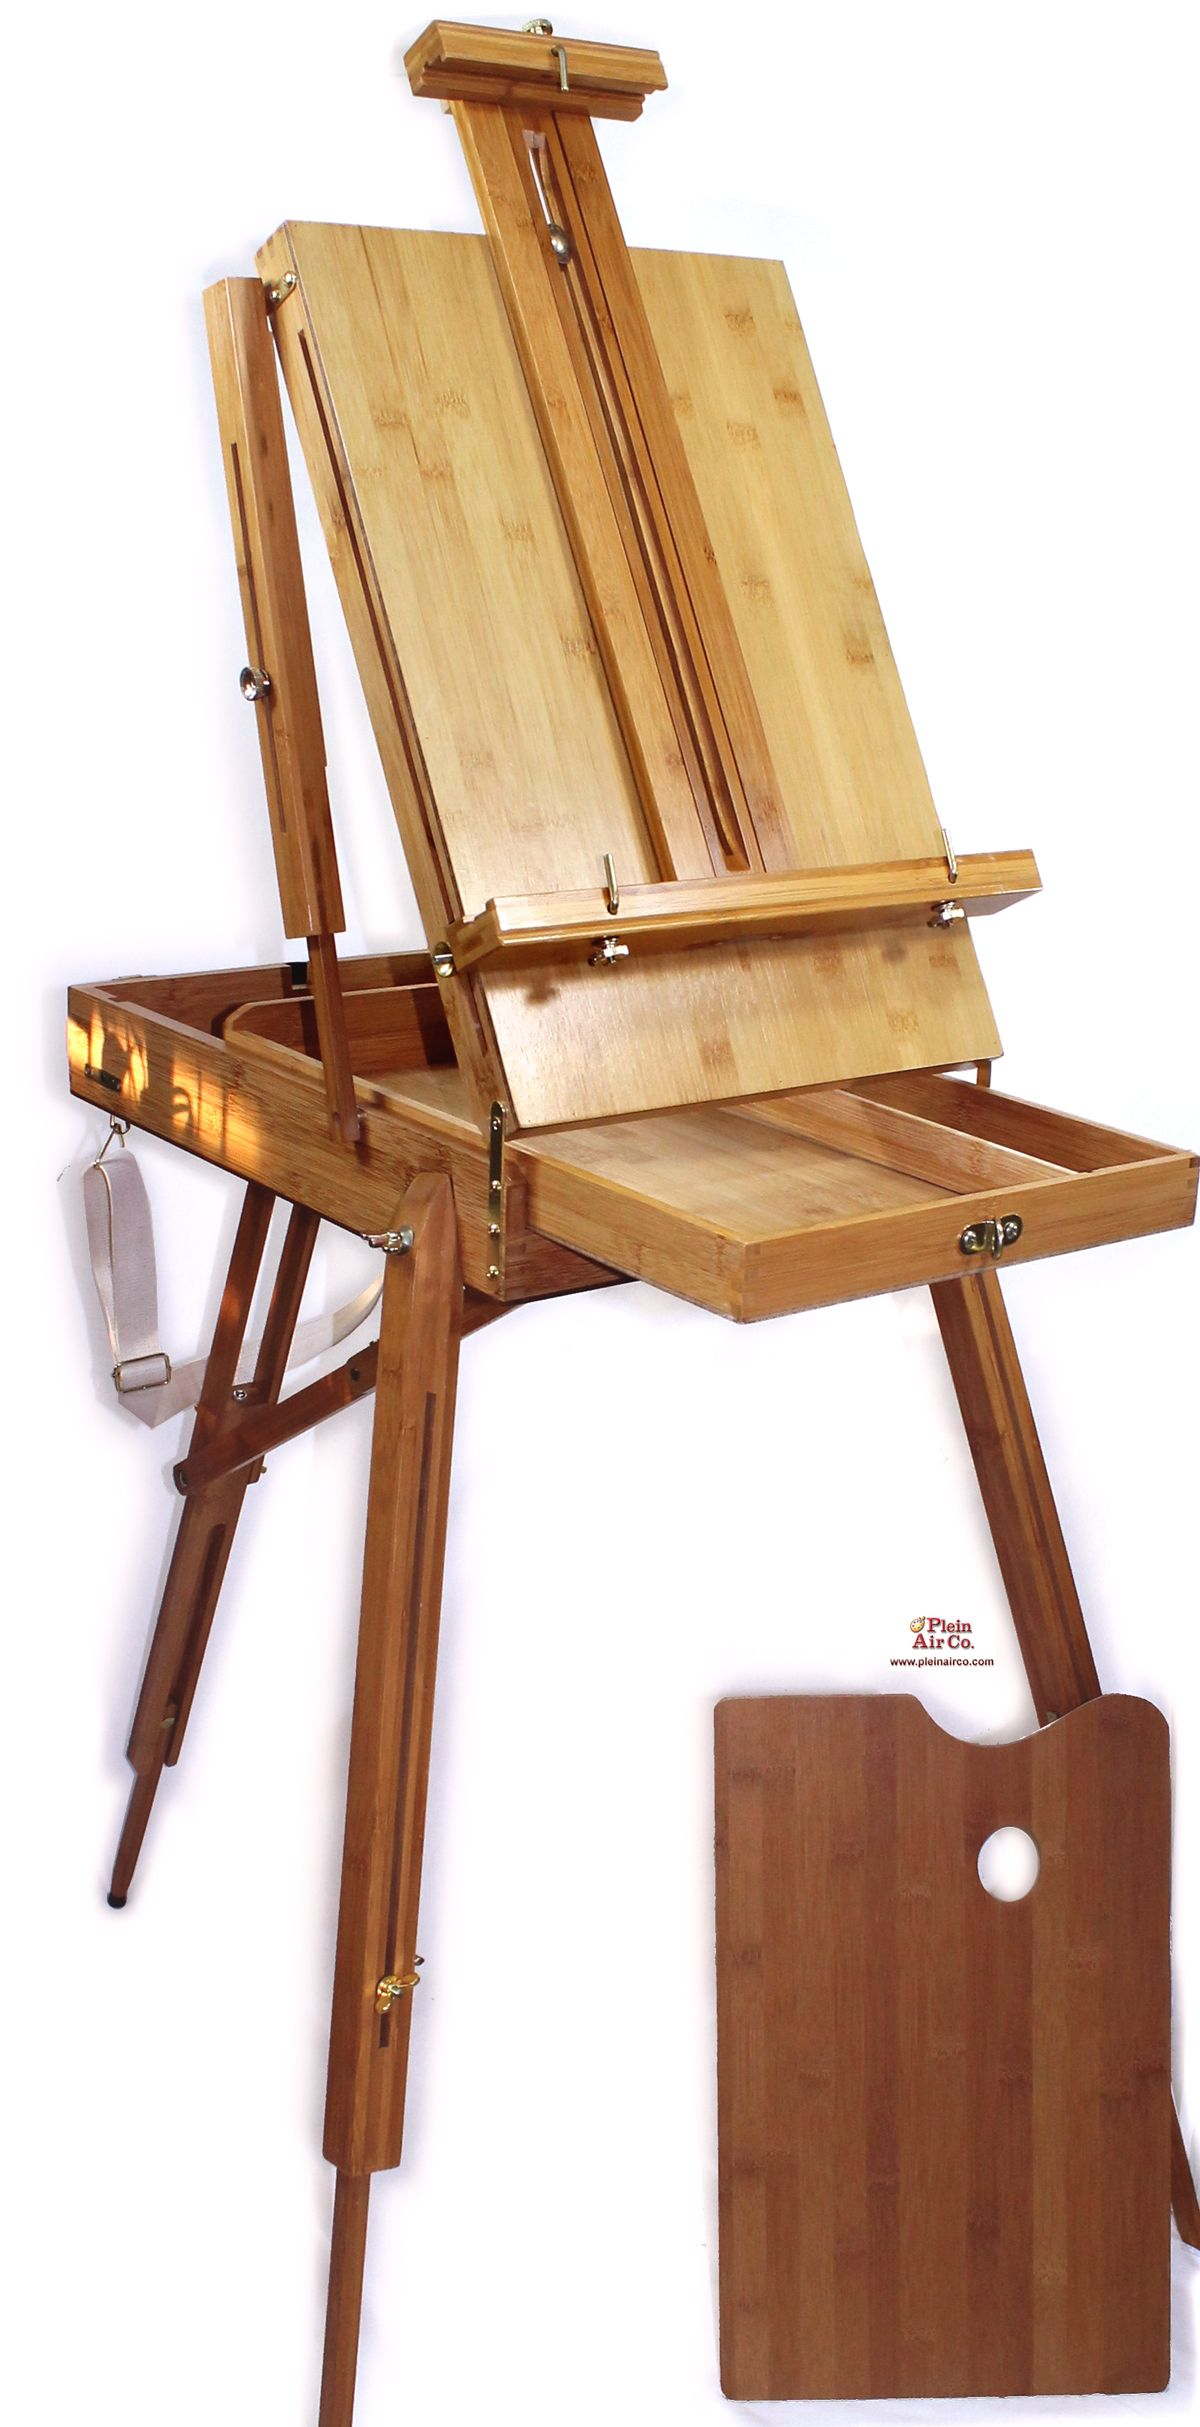 Arte Casa Furniture For Sale Looks A Lot Like My Easel Art Pinterest Artes Visuales